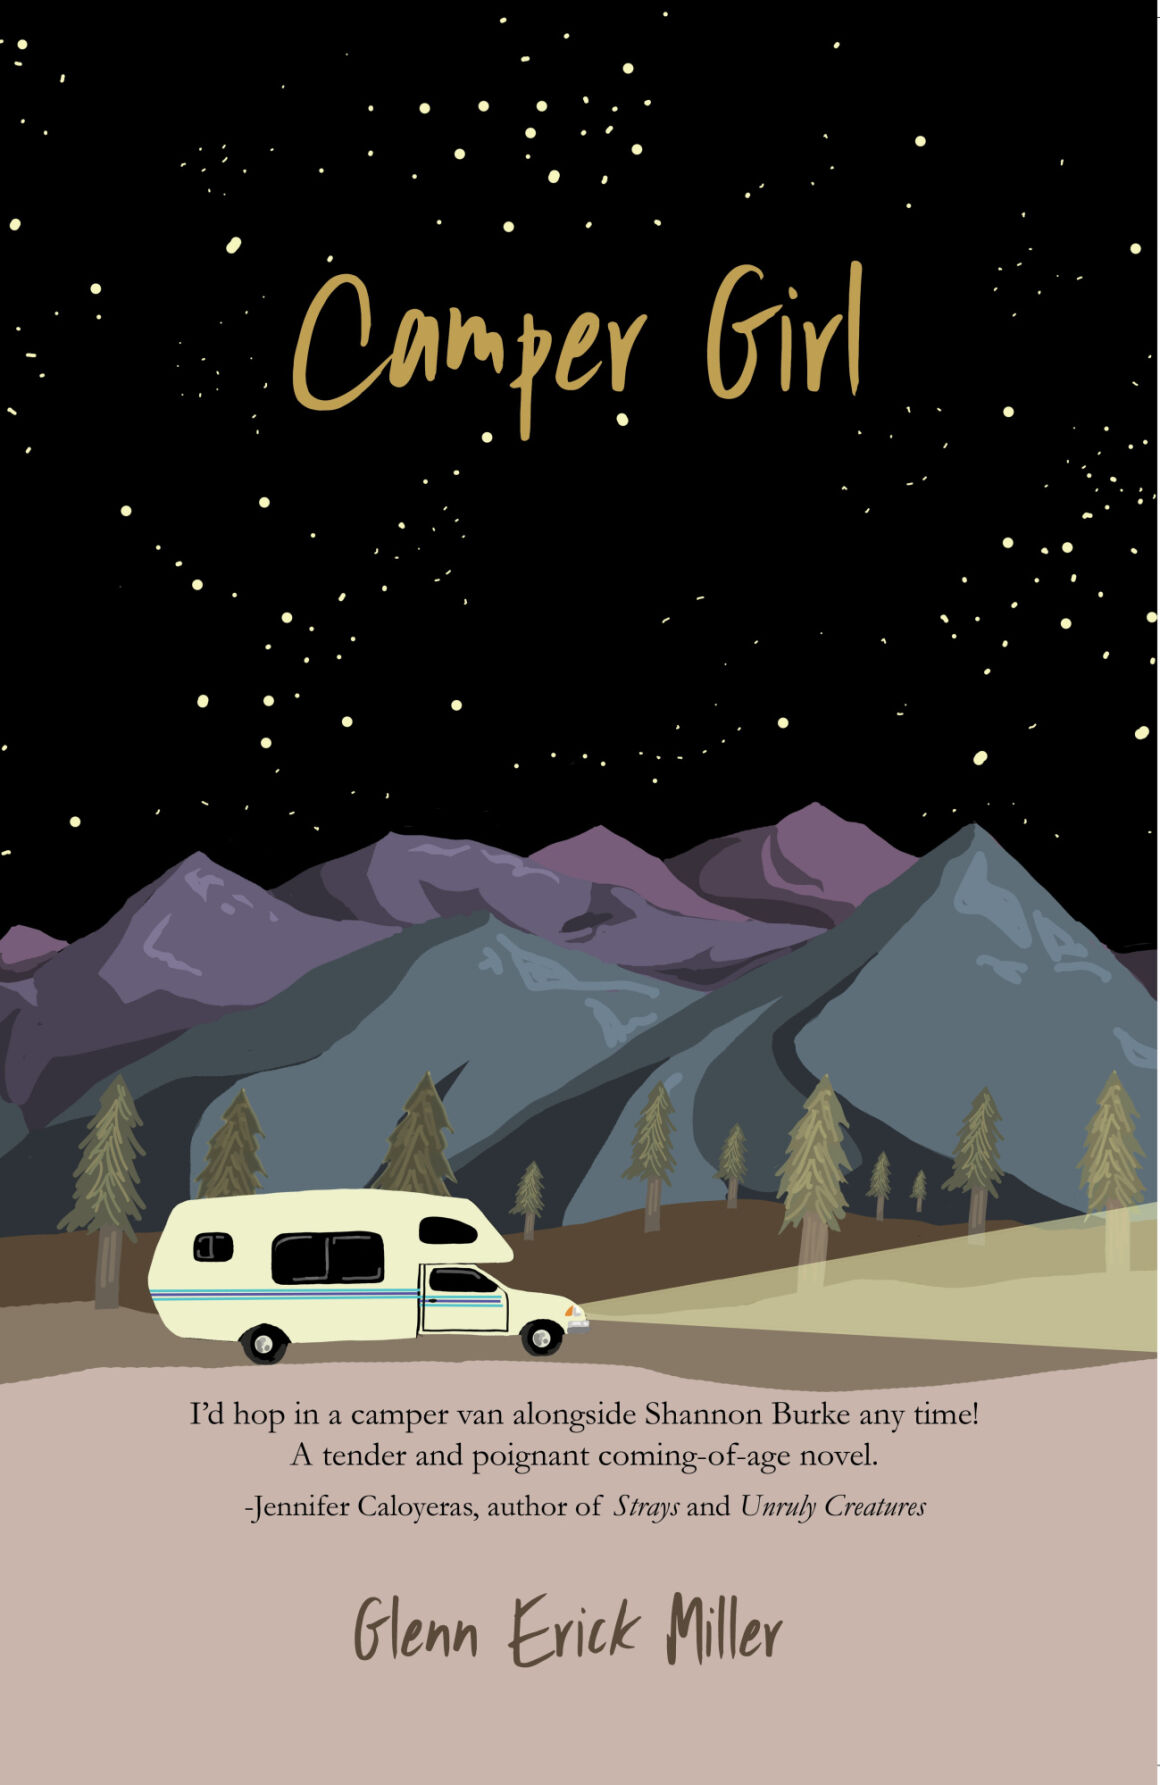 Young adult novel 'Camper Girl' fueled by a challenge and comrades